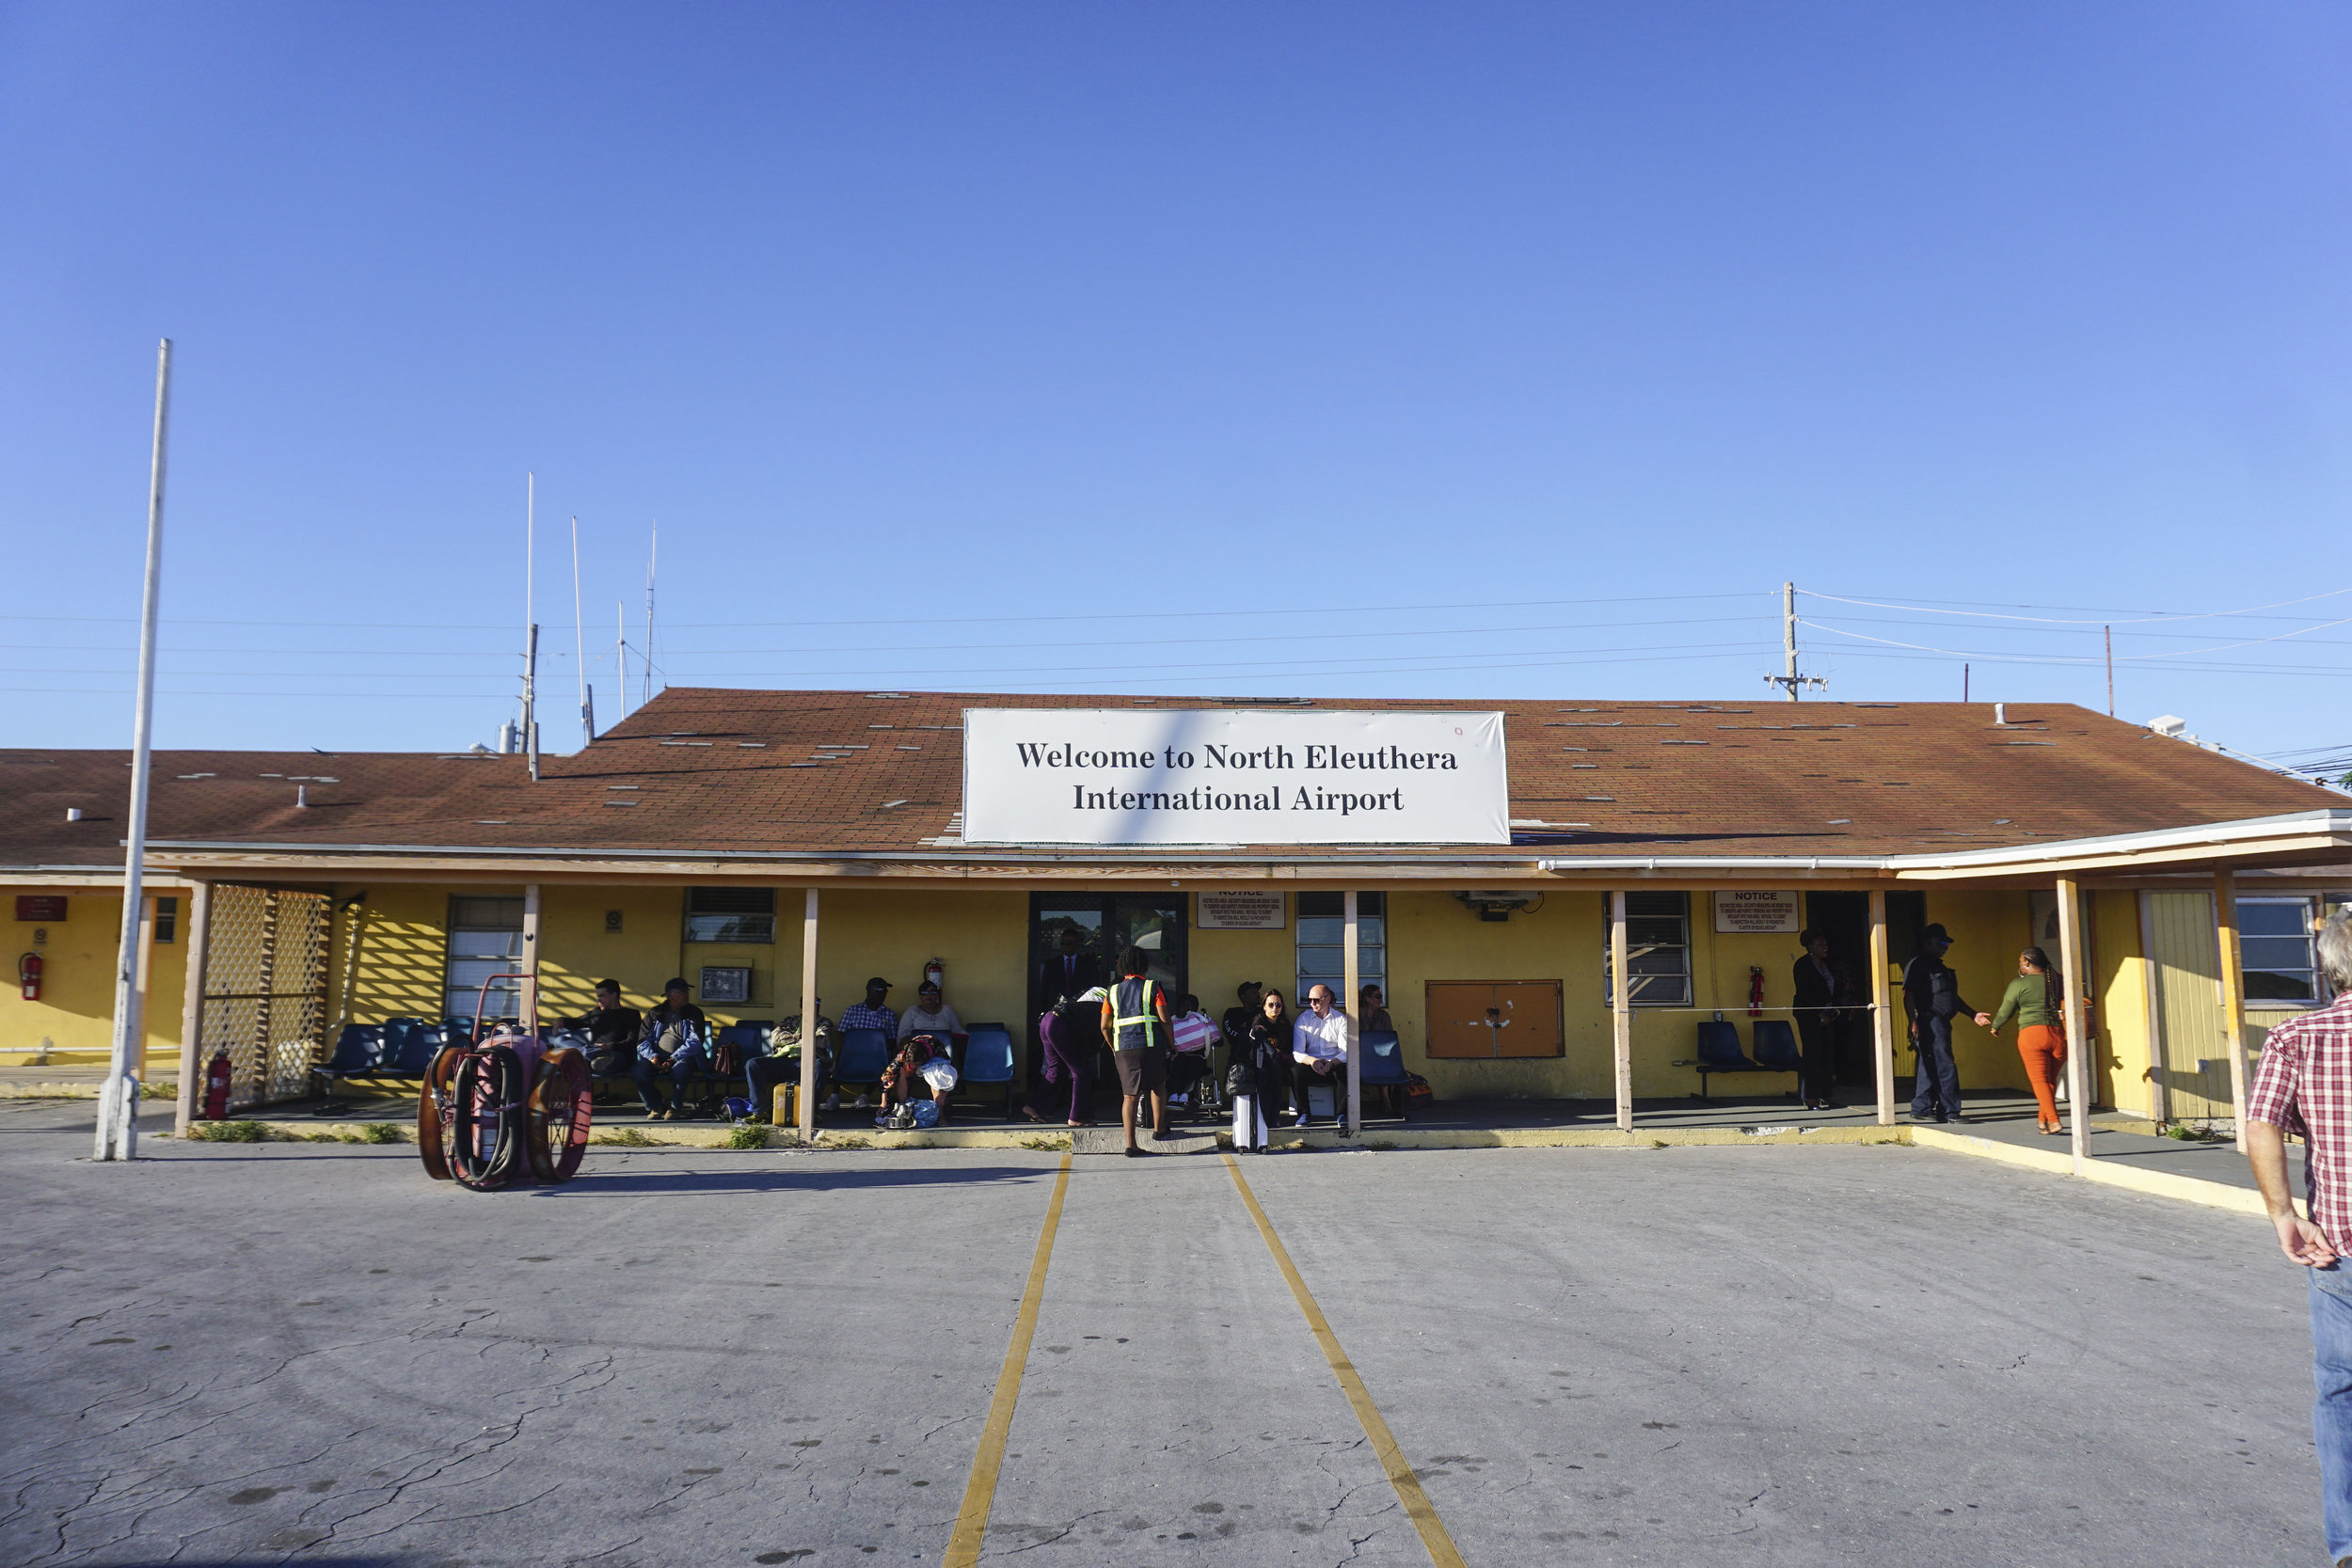 Copy of North Eleuthera Airport